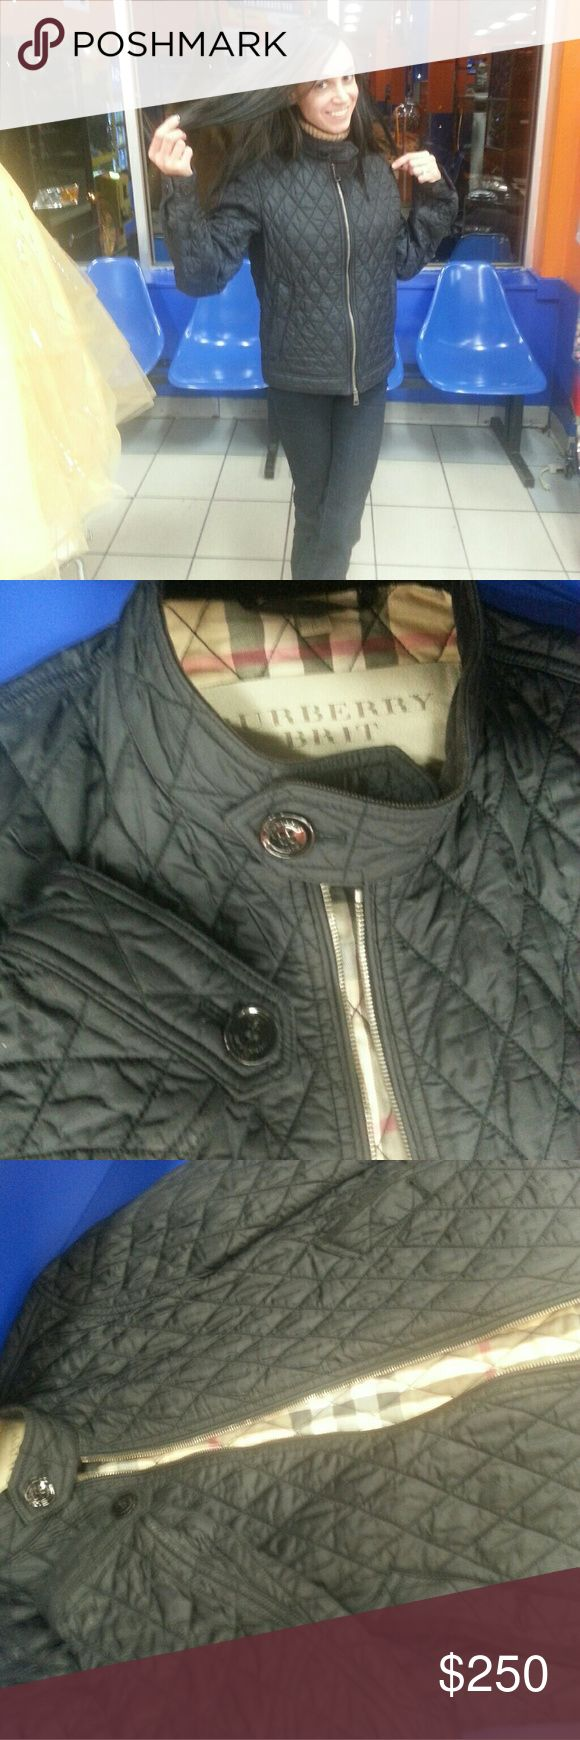 Burberry jacket size best 4 small girl sze 2- 6 Black Burberry jacket. Good for spring or under a heavy jacket or any season in a west coast type of climate but hopefully n east coast not heavy enough to wear alone in winter. Diamond threaded style pattern better described as quilted. Burberry pattern inside jacket. Very cute for a small girl and lightly worn. Burberry Jackets & Coats